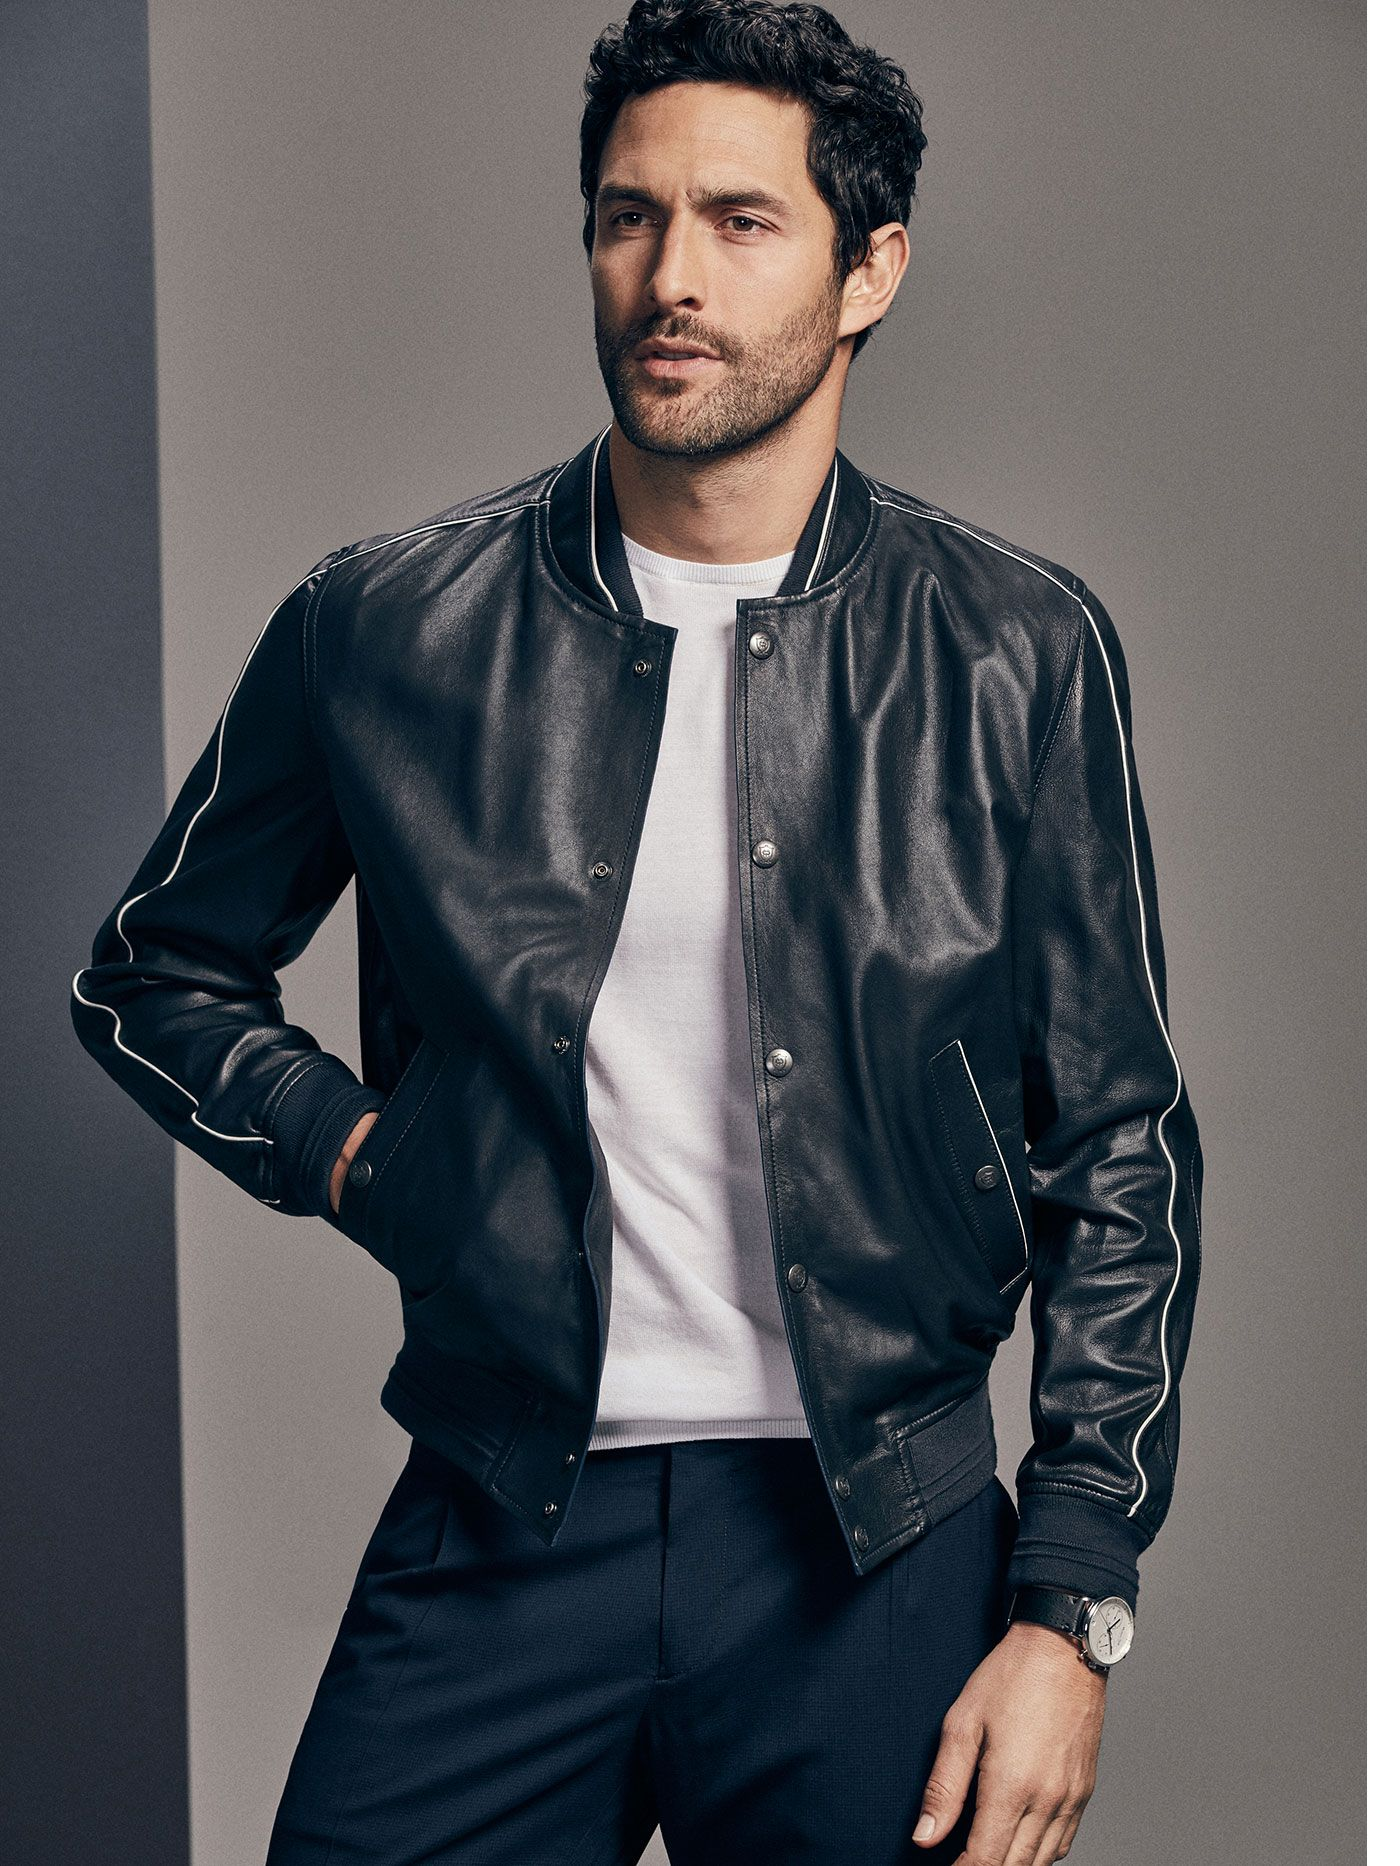 Massimo Dutti Limited Edition Nappa Bomber Jacket 249 Eur 398 An Exceptional Piece In Terms Of Style And Innovation Napp Chaqueta De Cuero Chaquetas Cuero [ 1866 x 1400 Pixel ]